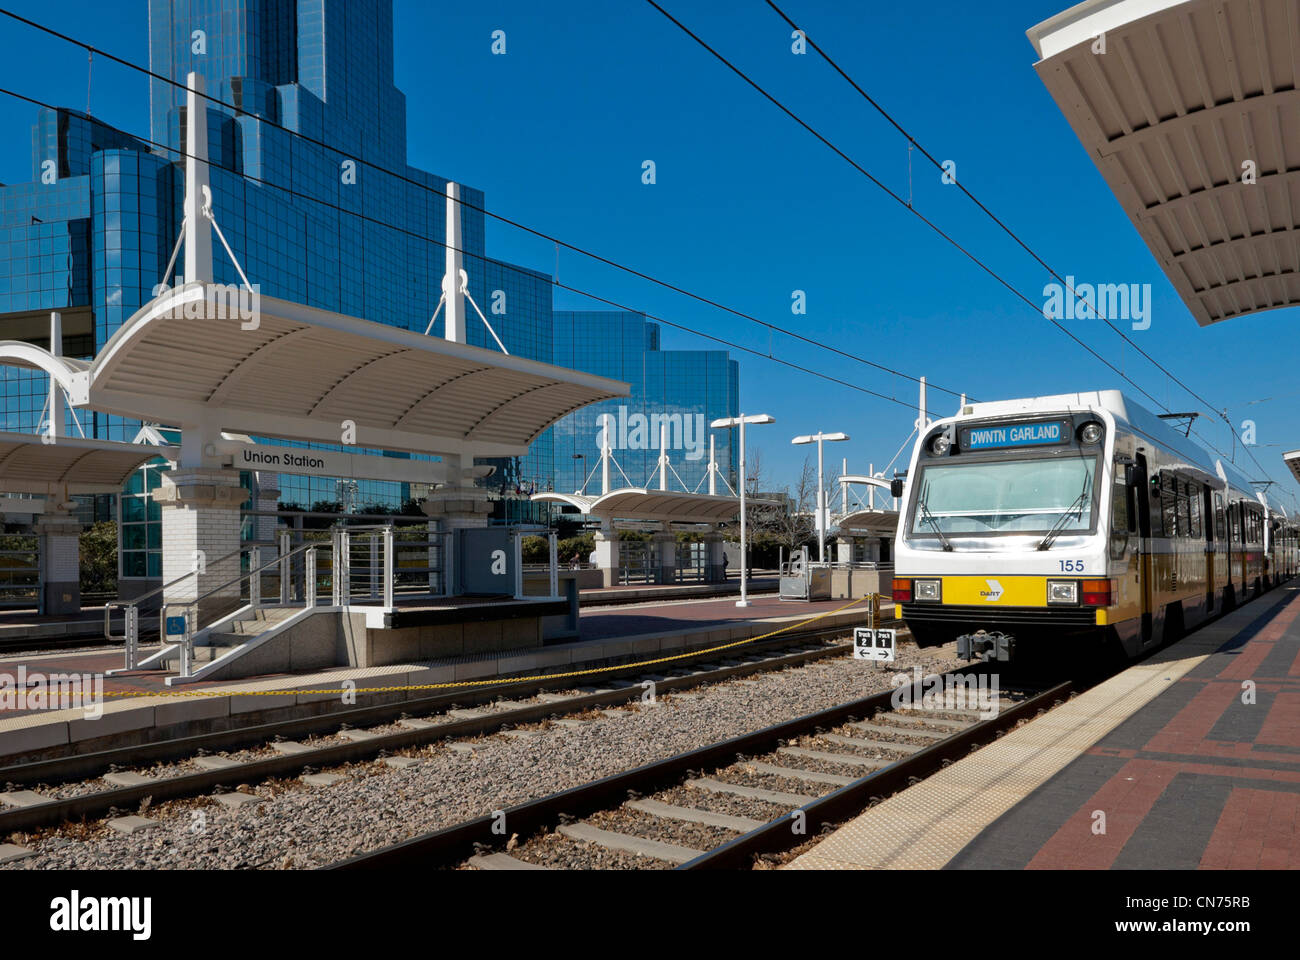 Train at platform at Union Station, Dallas, Texas, USA - office blocks behind - Stock Image